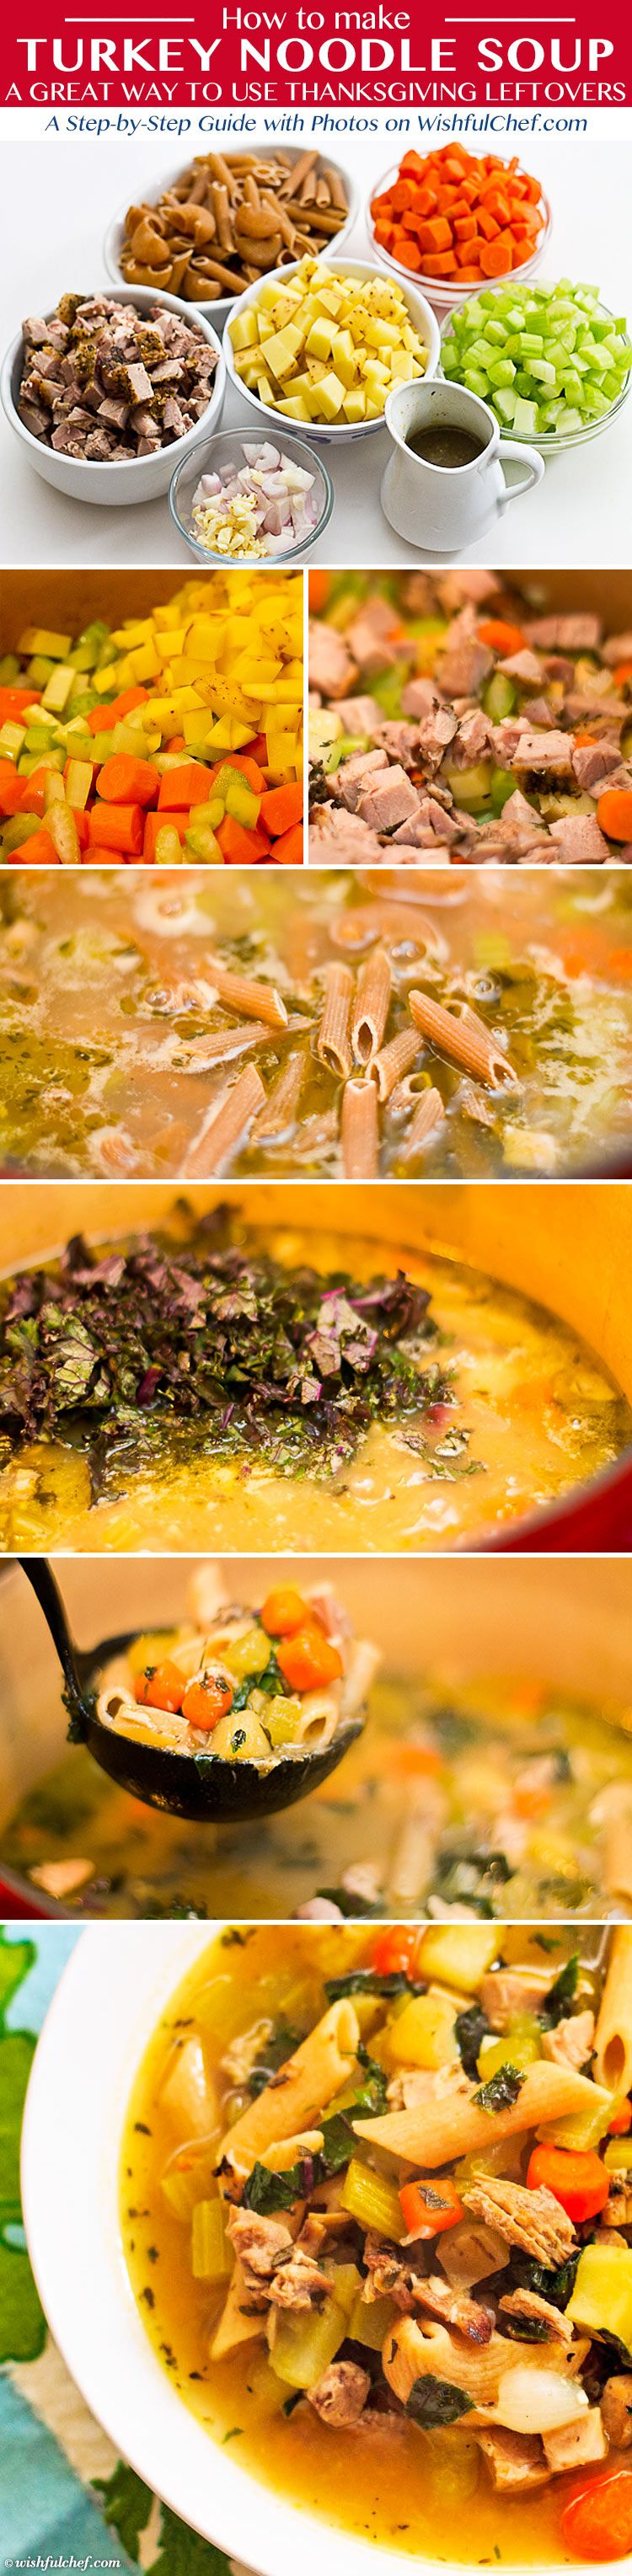 A Step-by-Step Guide: Turkey Noodle Soup - A Great Way to Use #Thanksgiving #Leftovers // wishfulchef.com